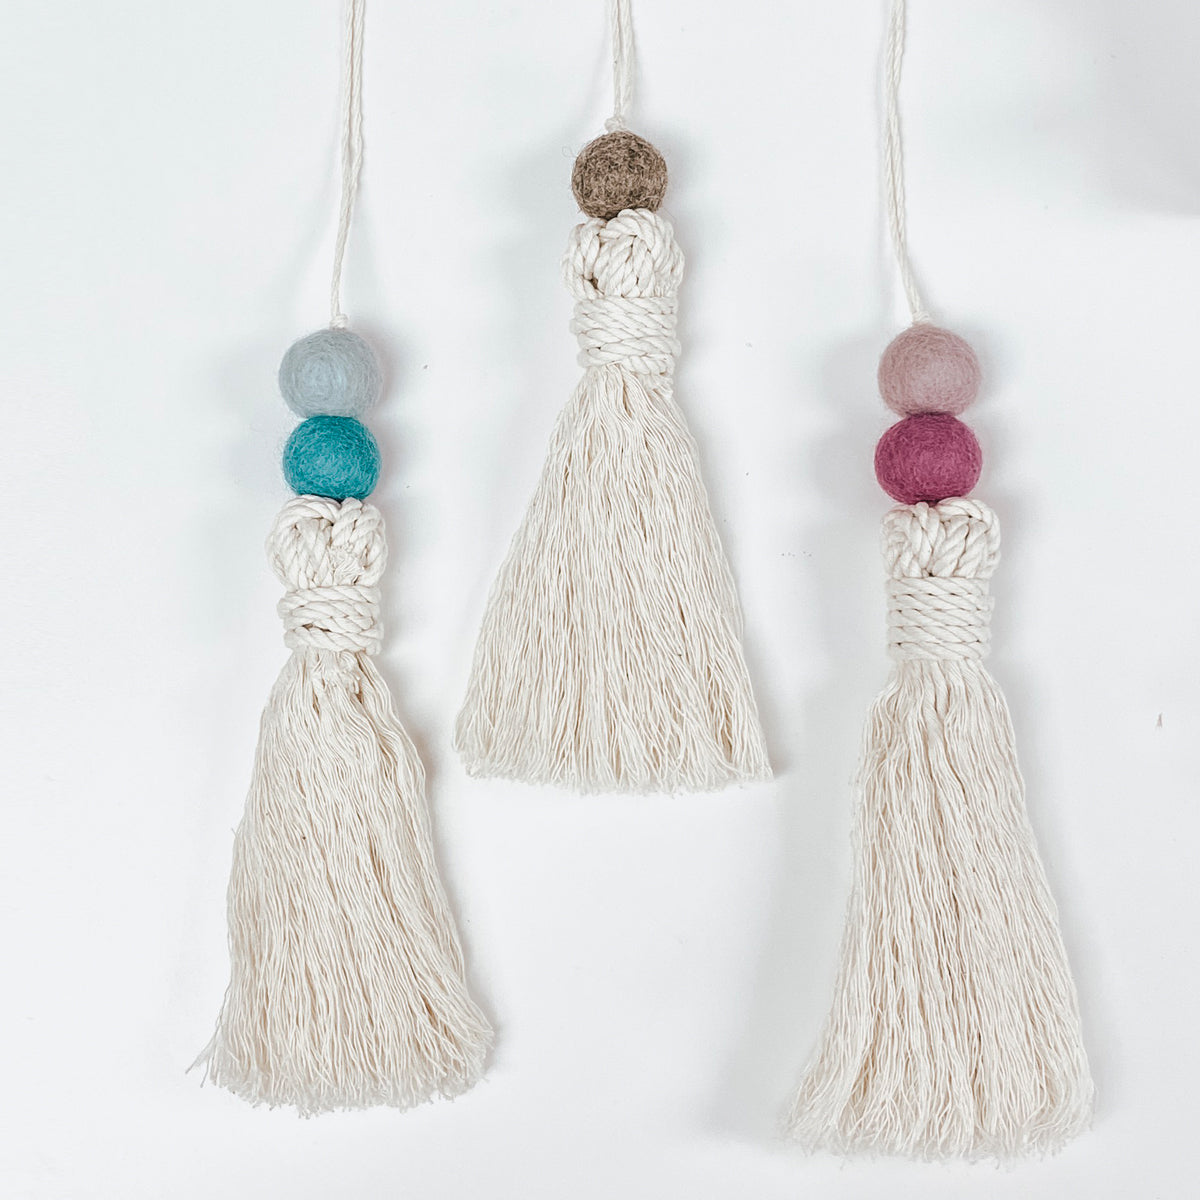 Large Tassle with Colorful Felt Ball